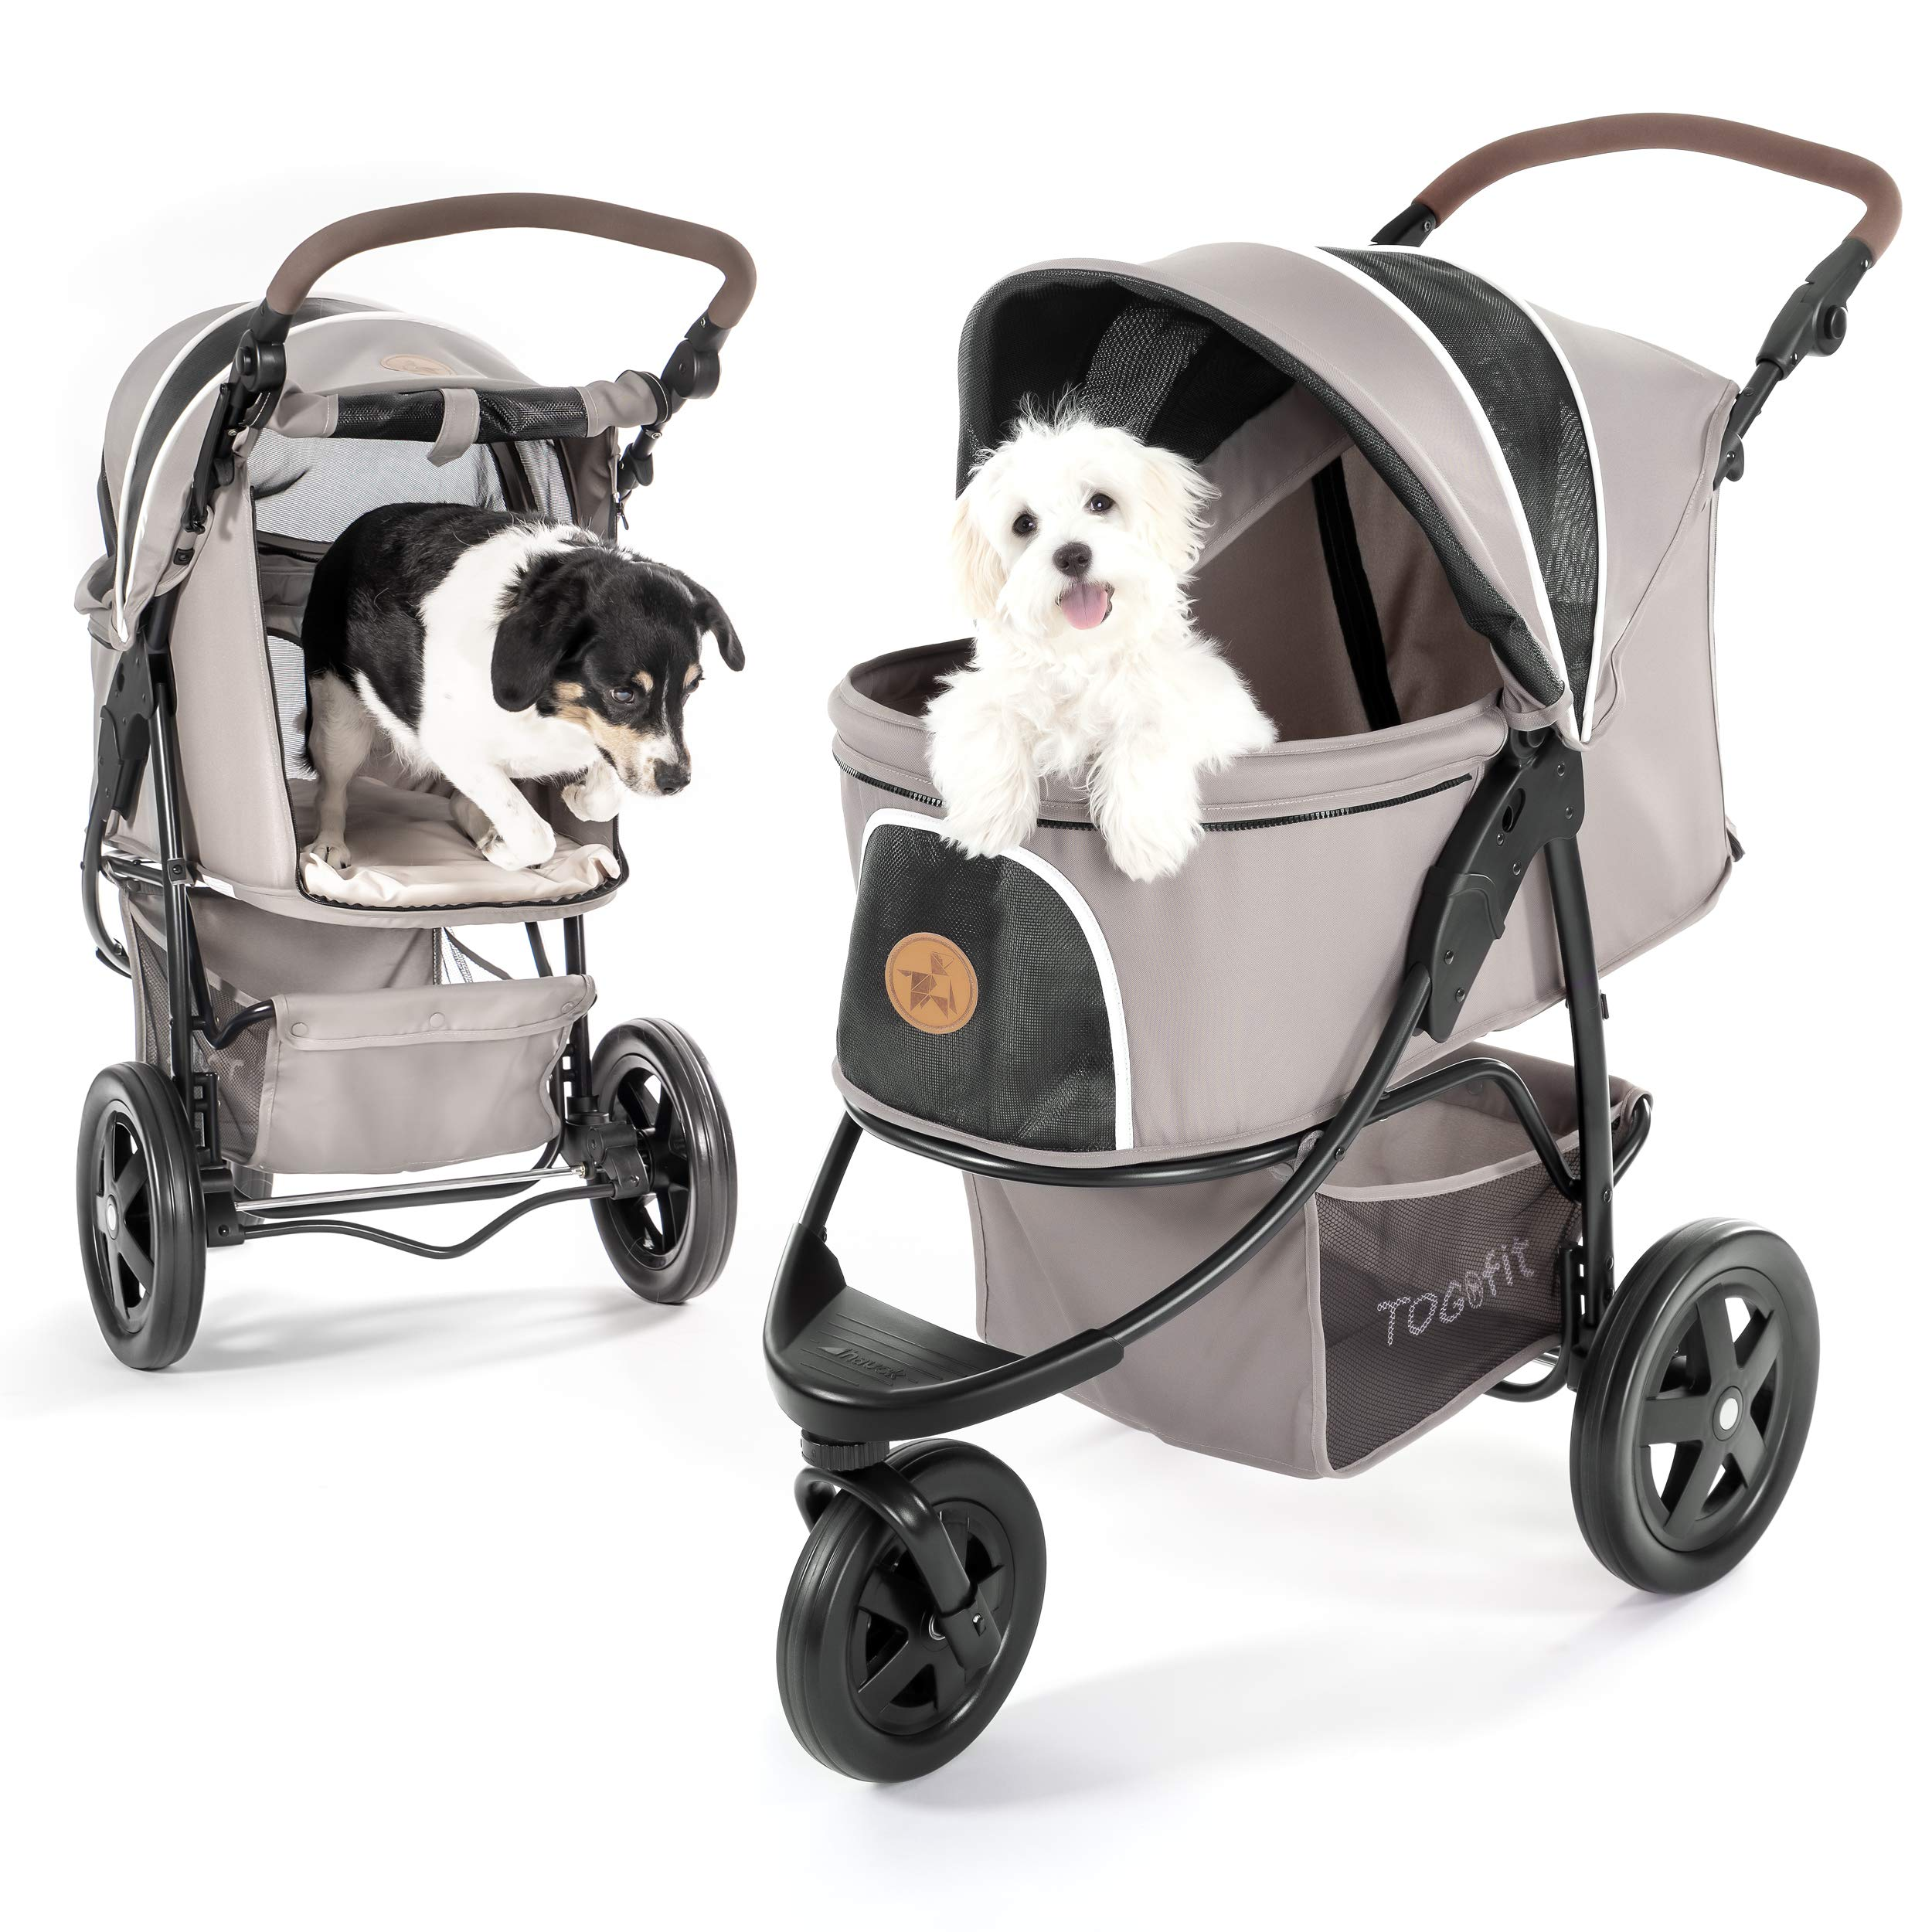 Hauck TOGfit Pet Roadster